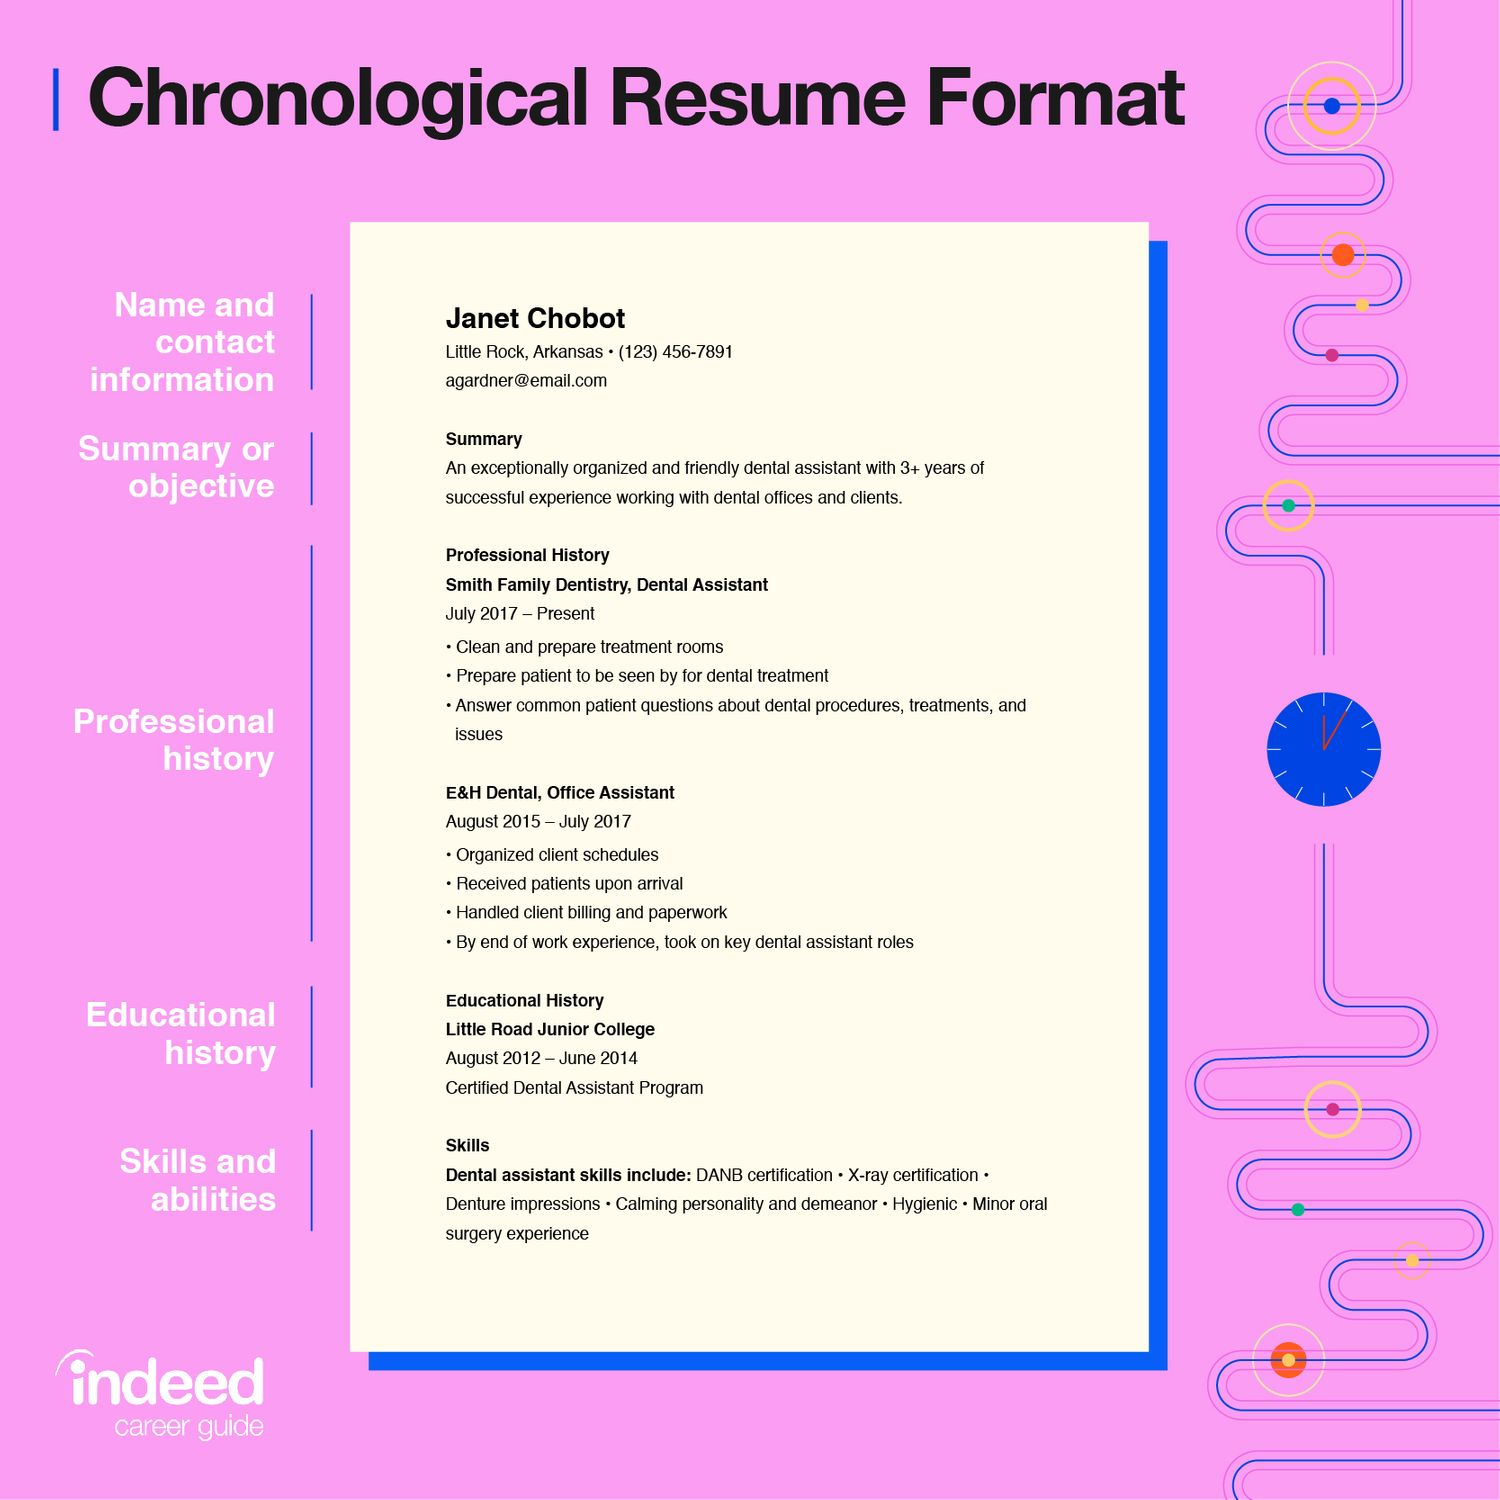 chronological resume tips and examples indeed with only one job history resized writing Resume Resume With Only One Job History